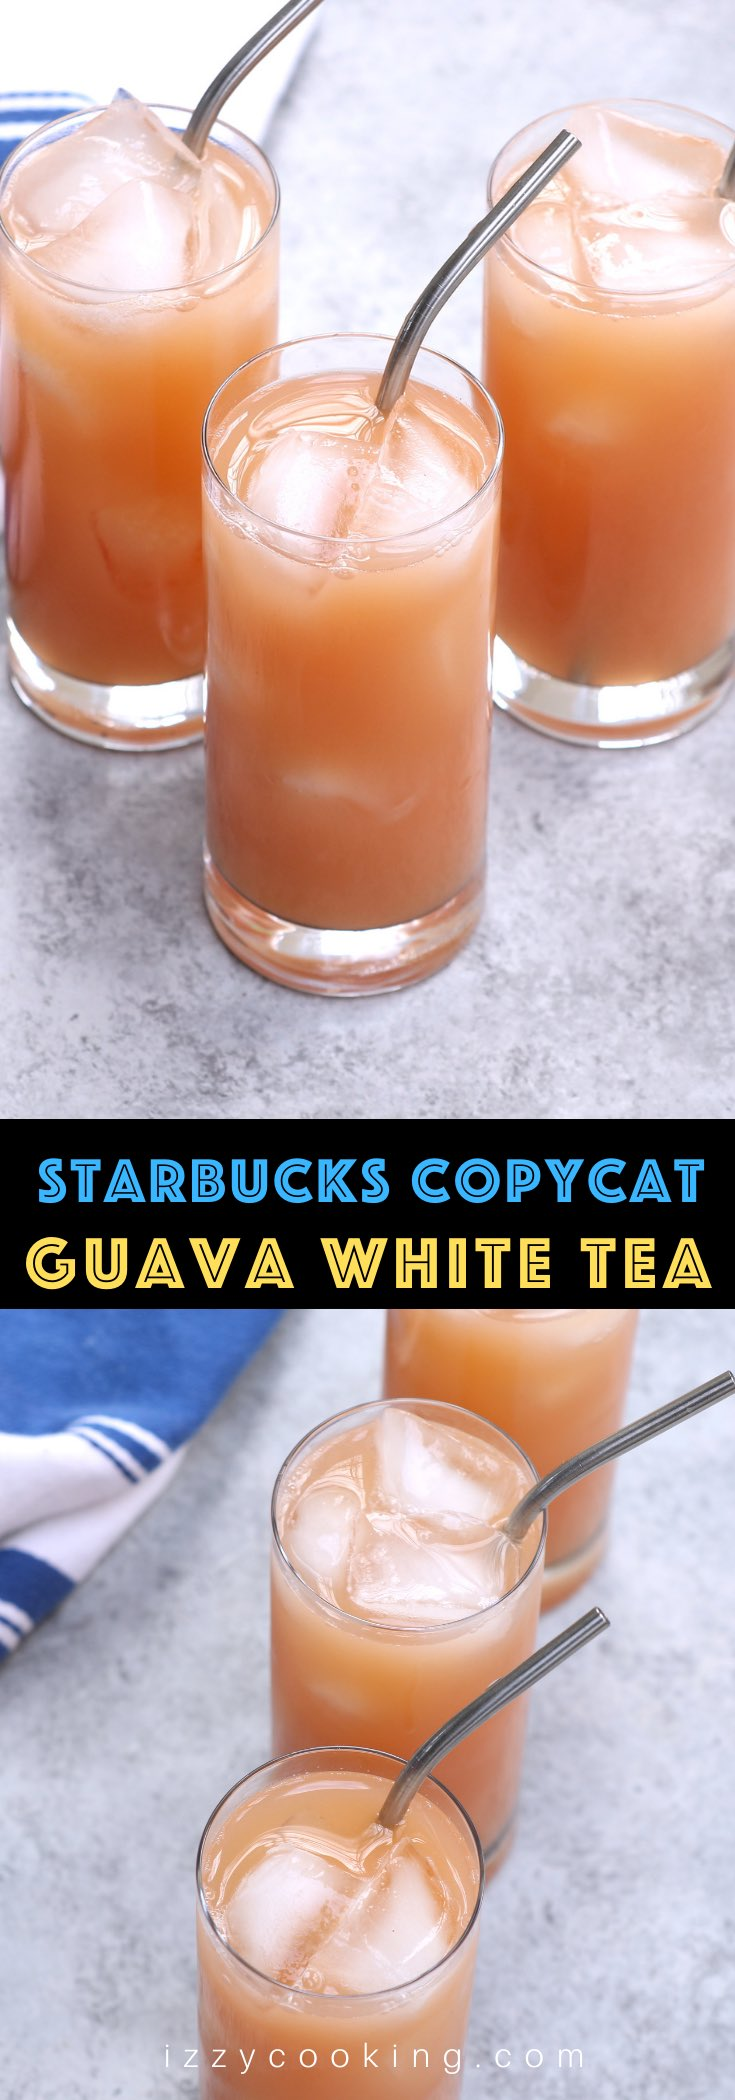 This Iced Guava White Tea is the real deal! It gives all the delicious and refreshing flavor and tastes just like the one from Starbucks at the fraction of the price. You can make it at home with or without lemonade! #IcedGuavaWhiteTea #IcedGuavaTeaLemonade